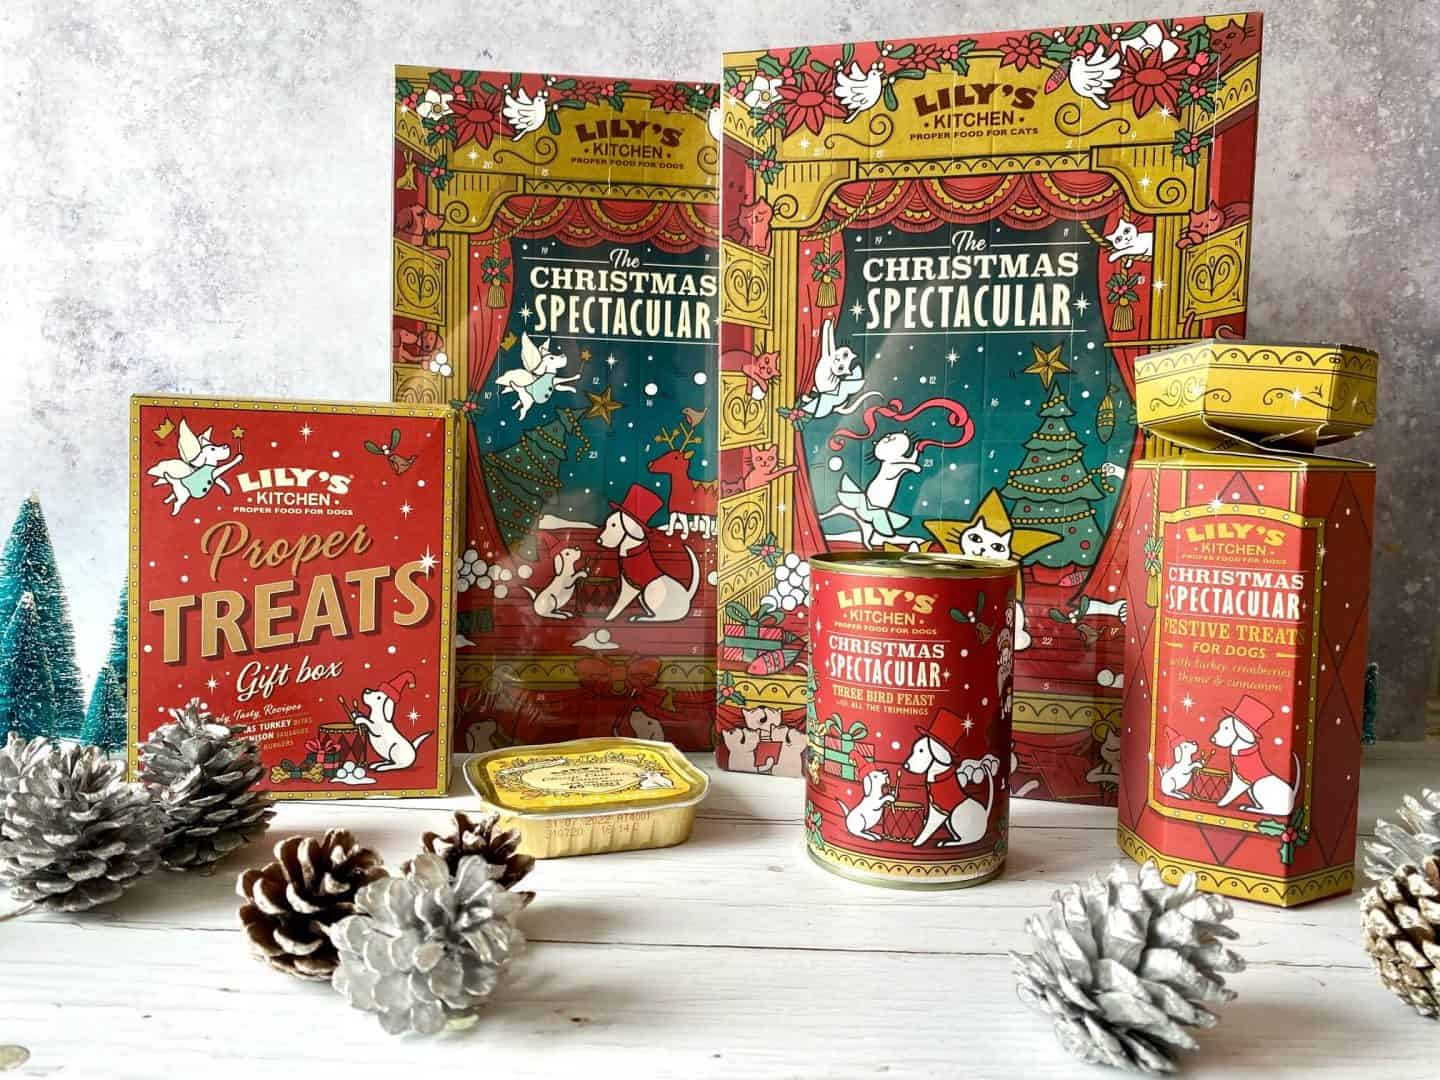 From advent calendars to turkey dinners, Lily's Kitchen has got the ultimate festive menu to make sure your pets are part of the family this Christmas